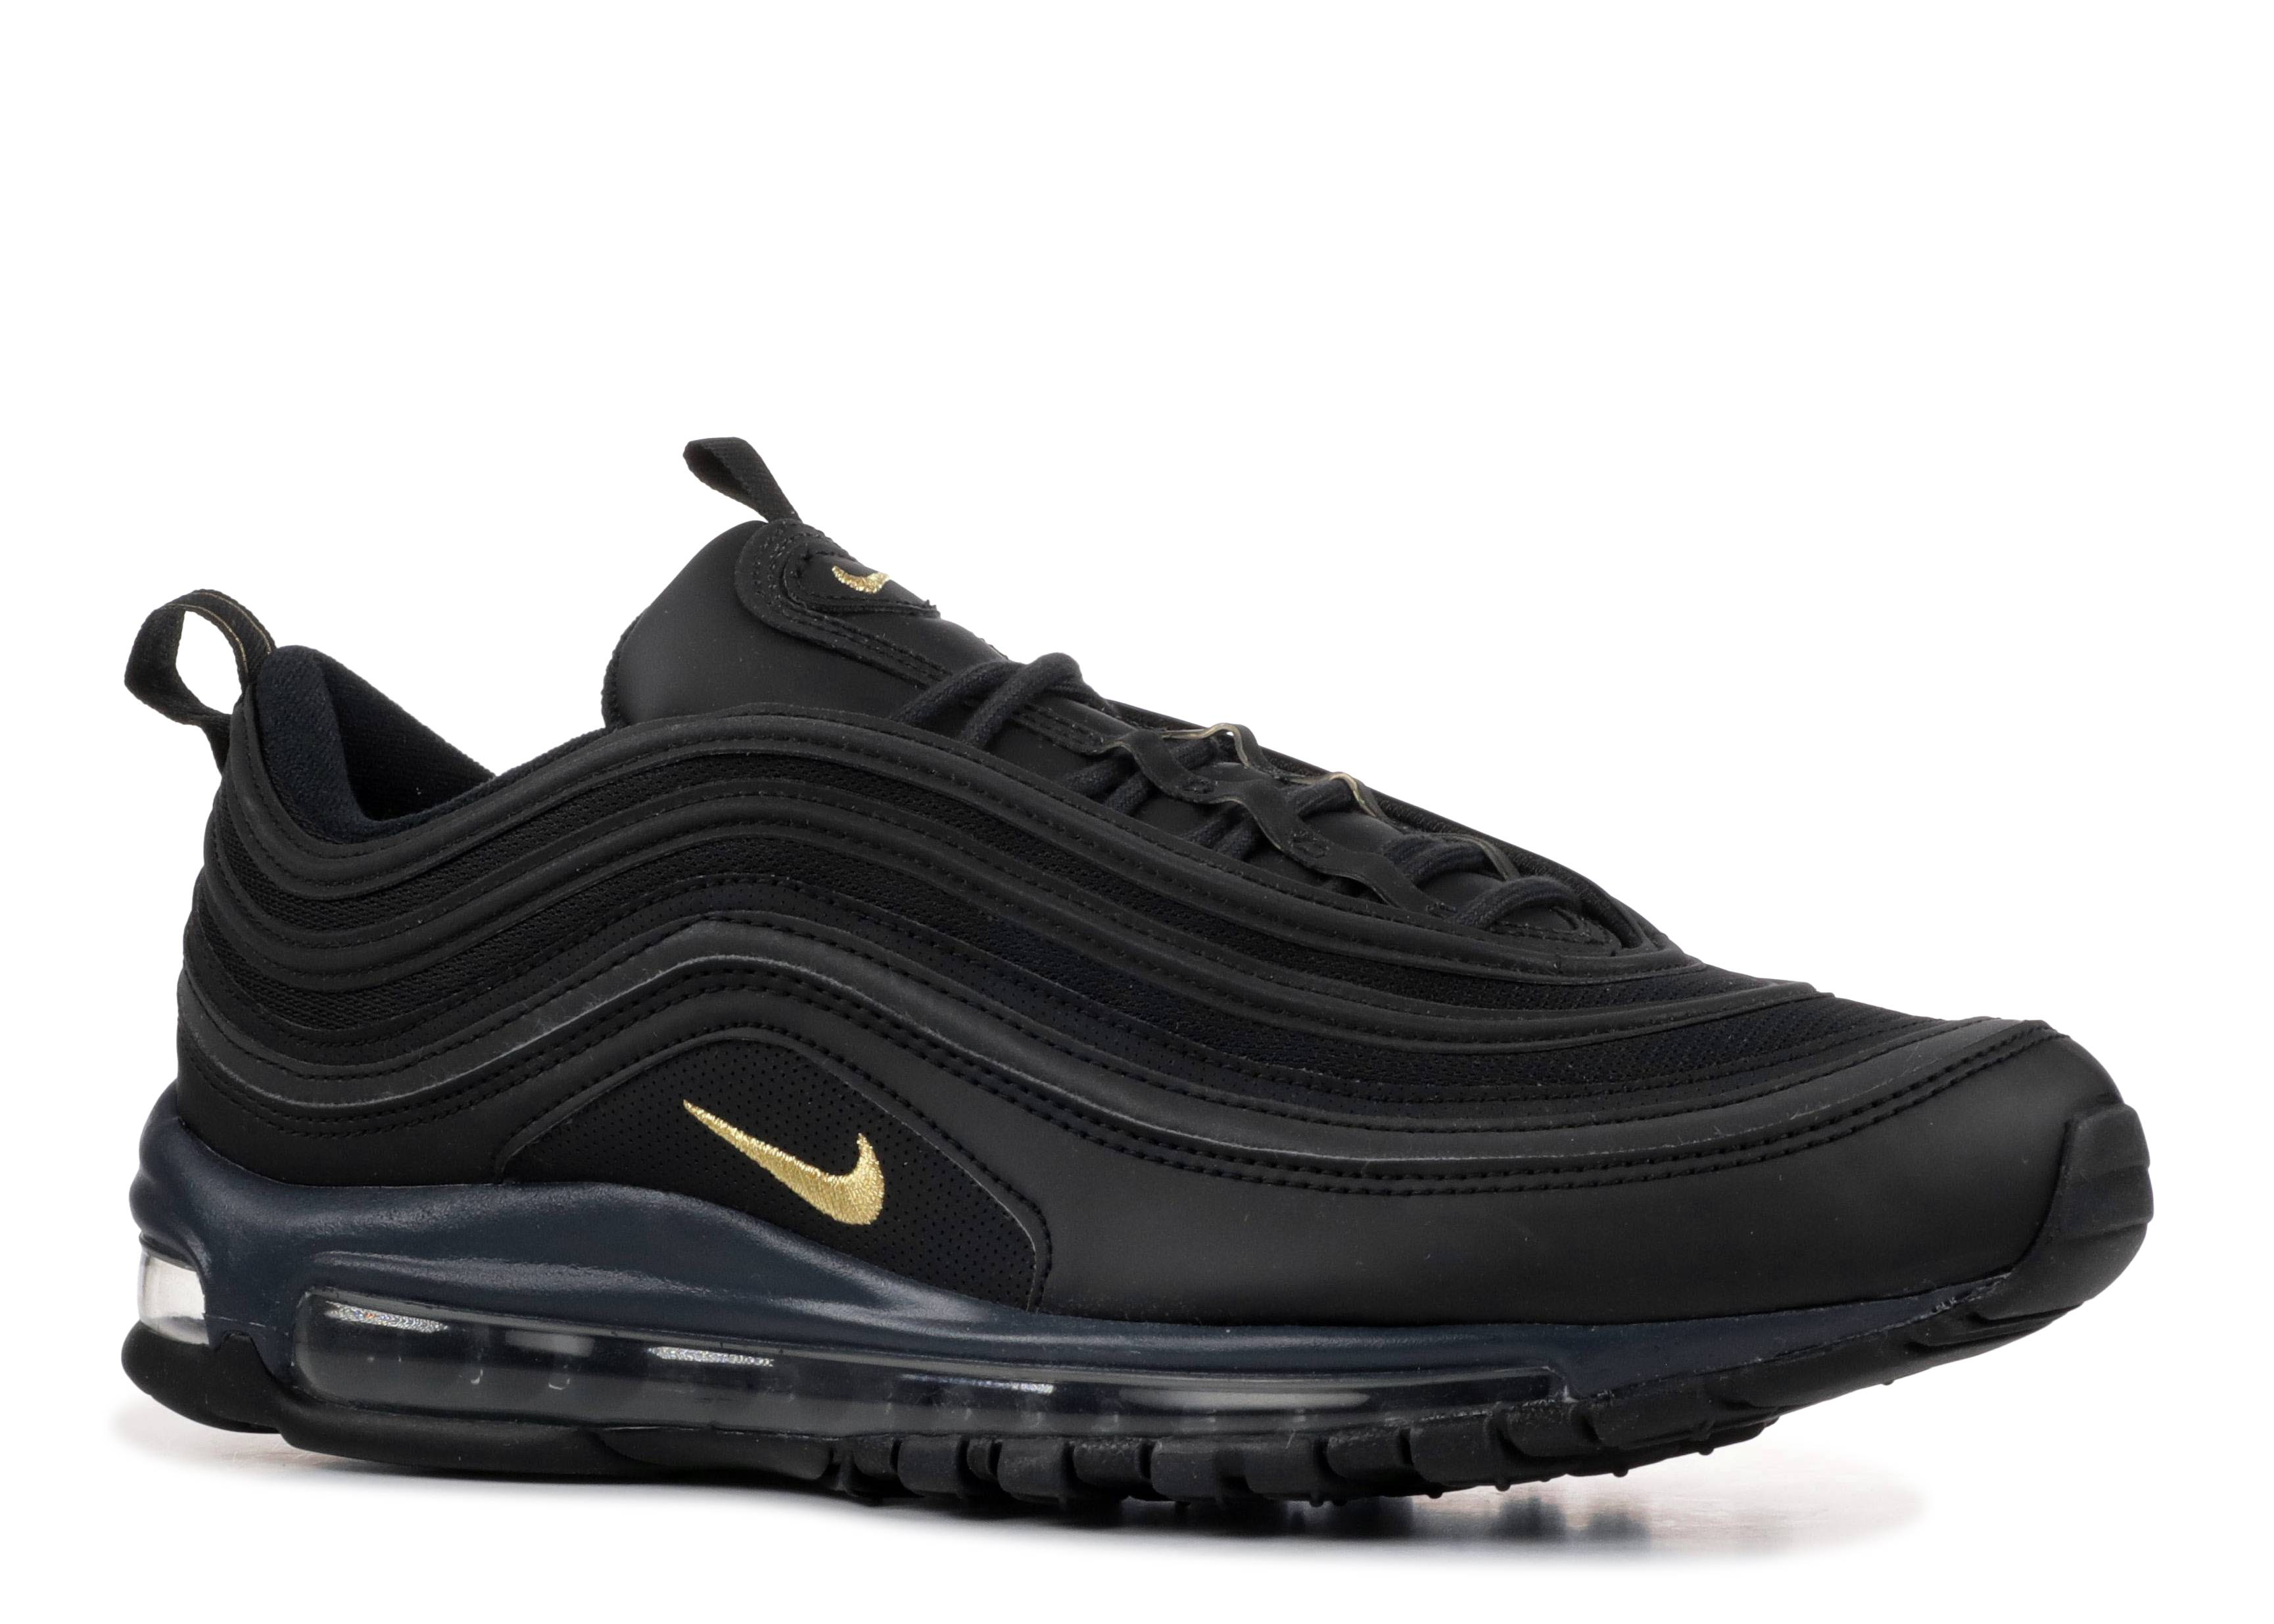 Details about Nike Air Max 97 Premium 'Black & Gold' Trainers Mens Uk Size 8.5 43 BQ4580 001